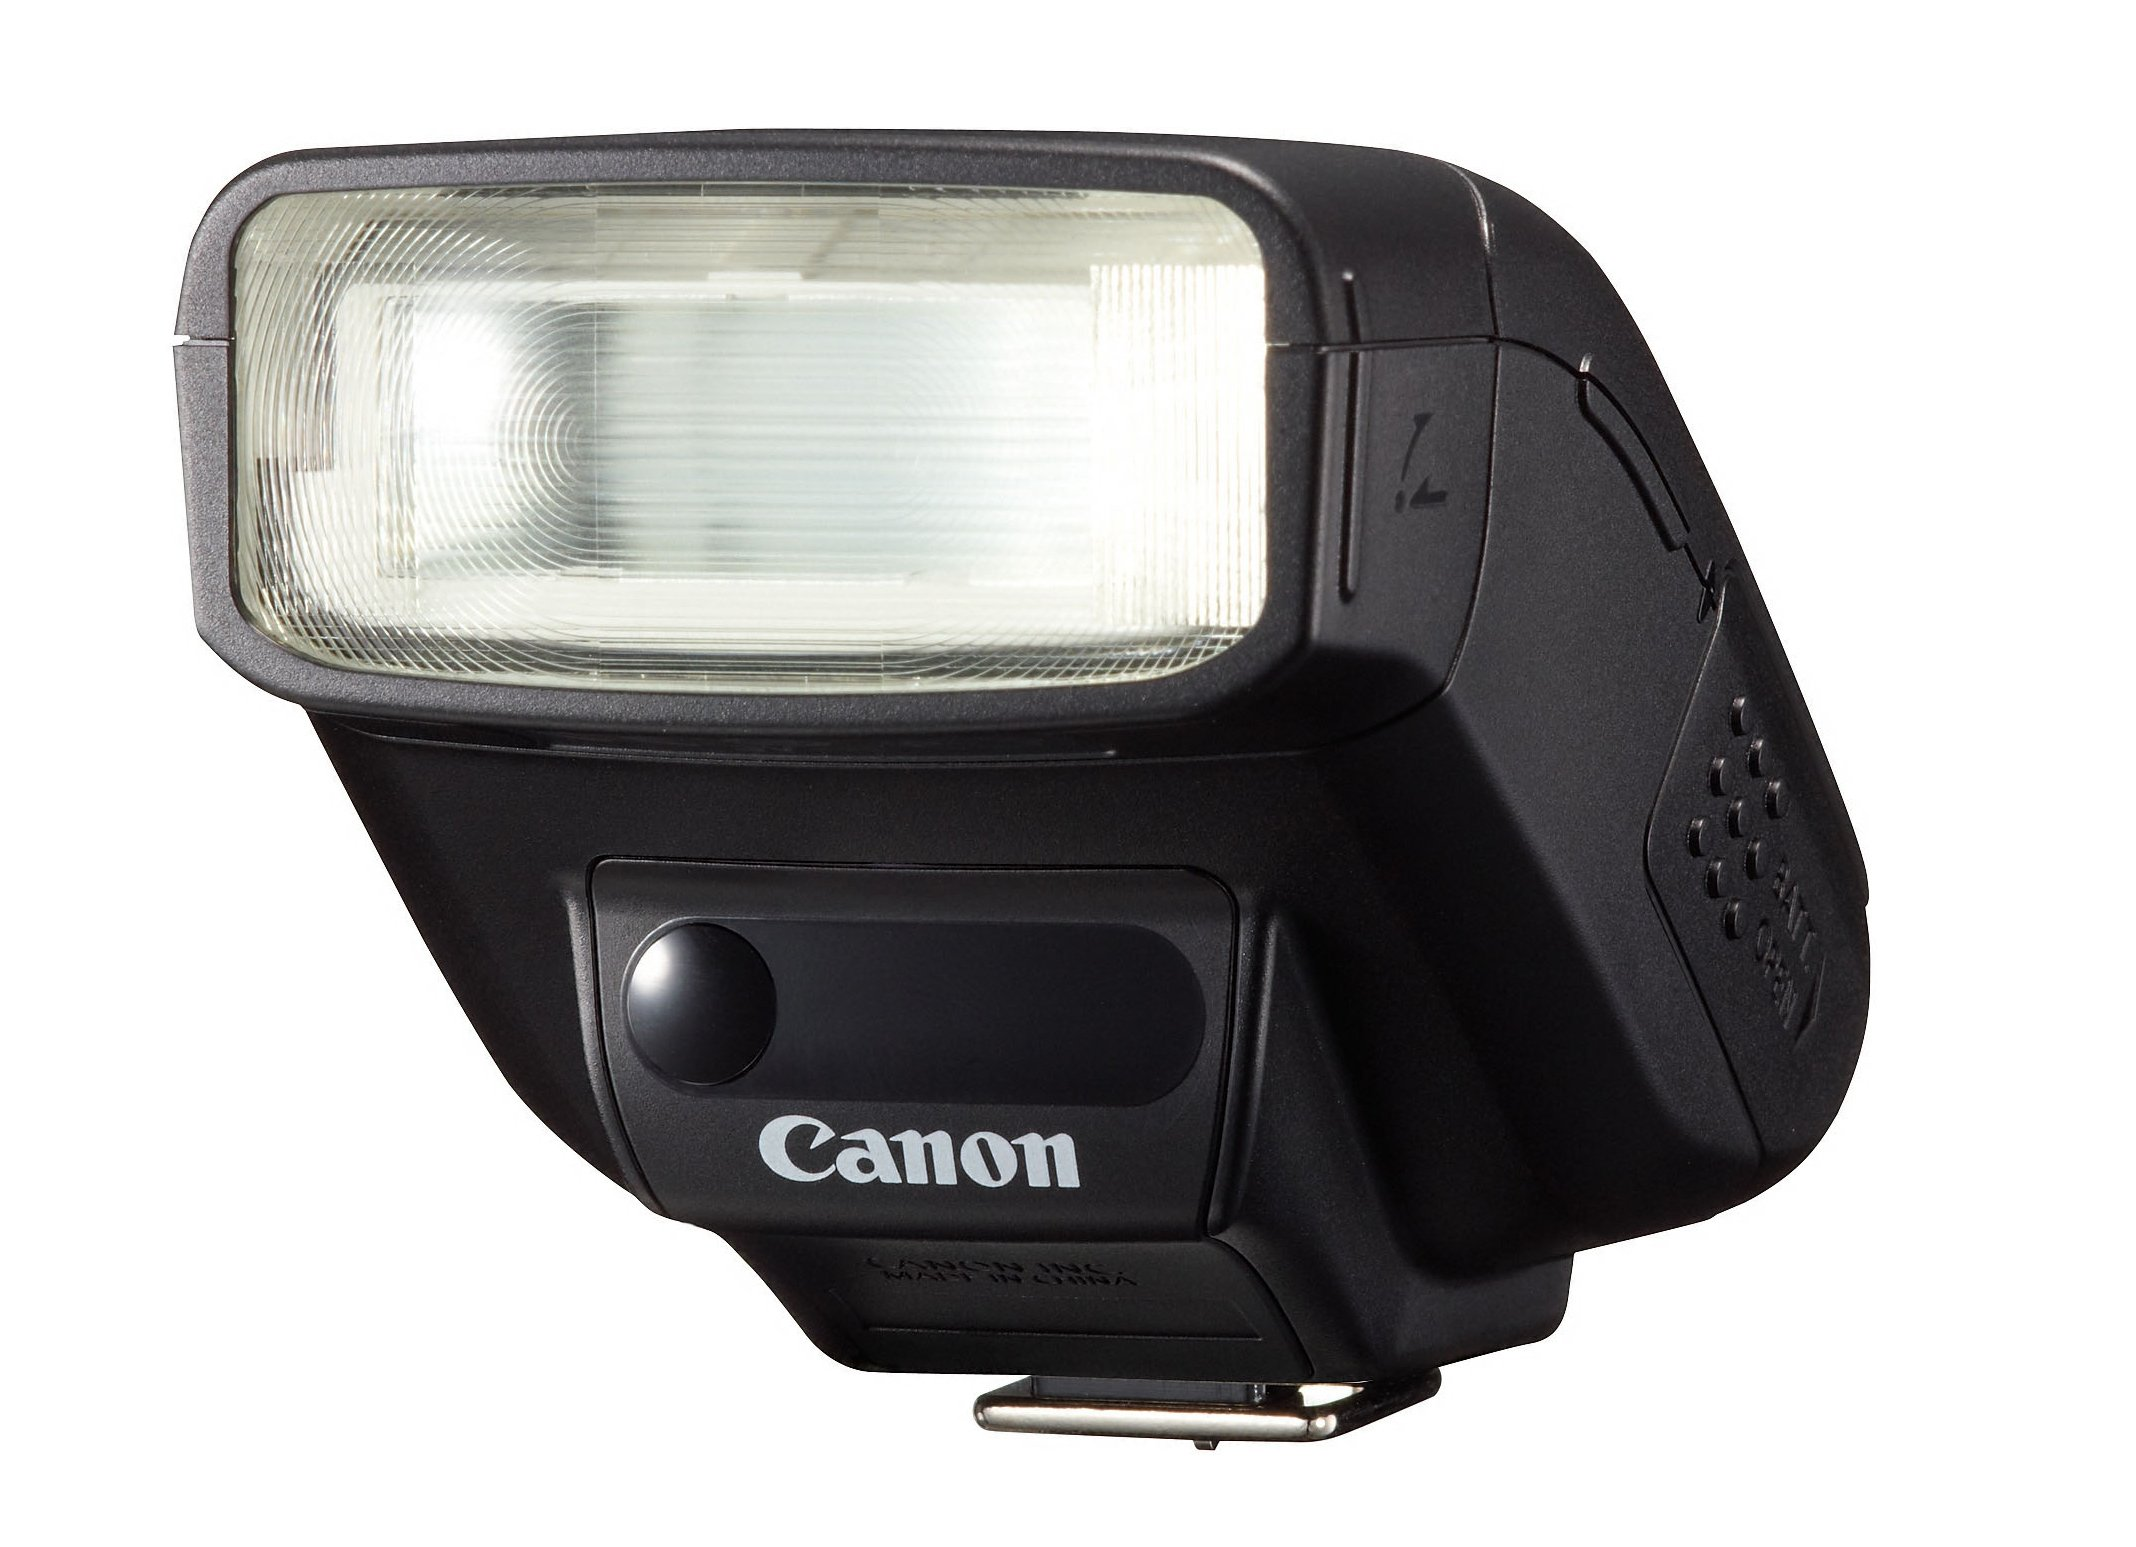 Canon flash Speedlite 270EX II SP270EX2(Japan Import-No Warranty)